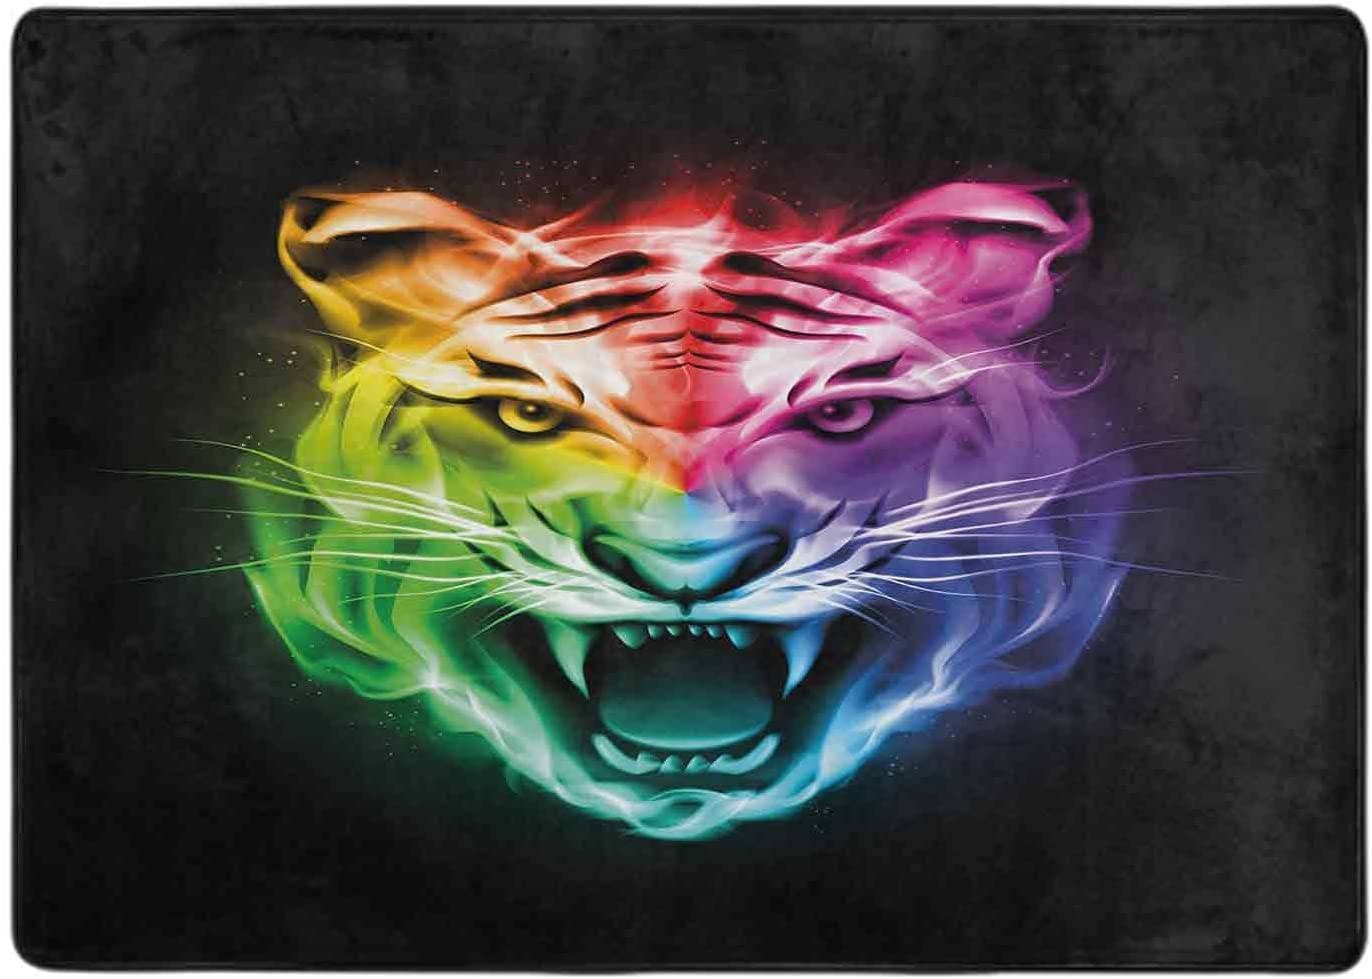 Carpet for Bedroom Lowest price challenge Multicolored Feline gift Large Abstract Rendition